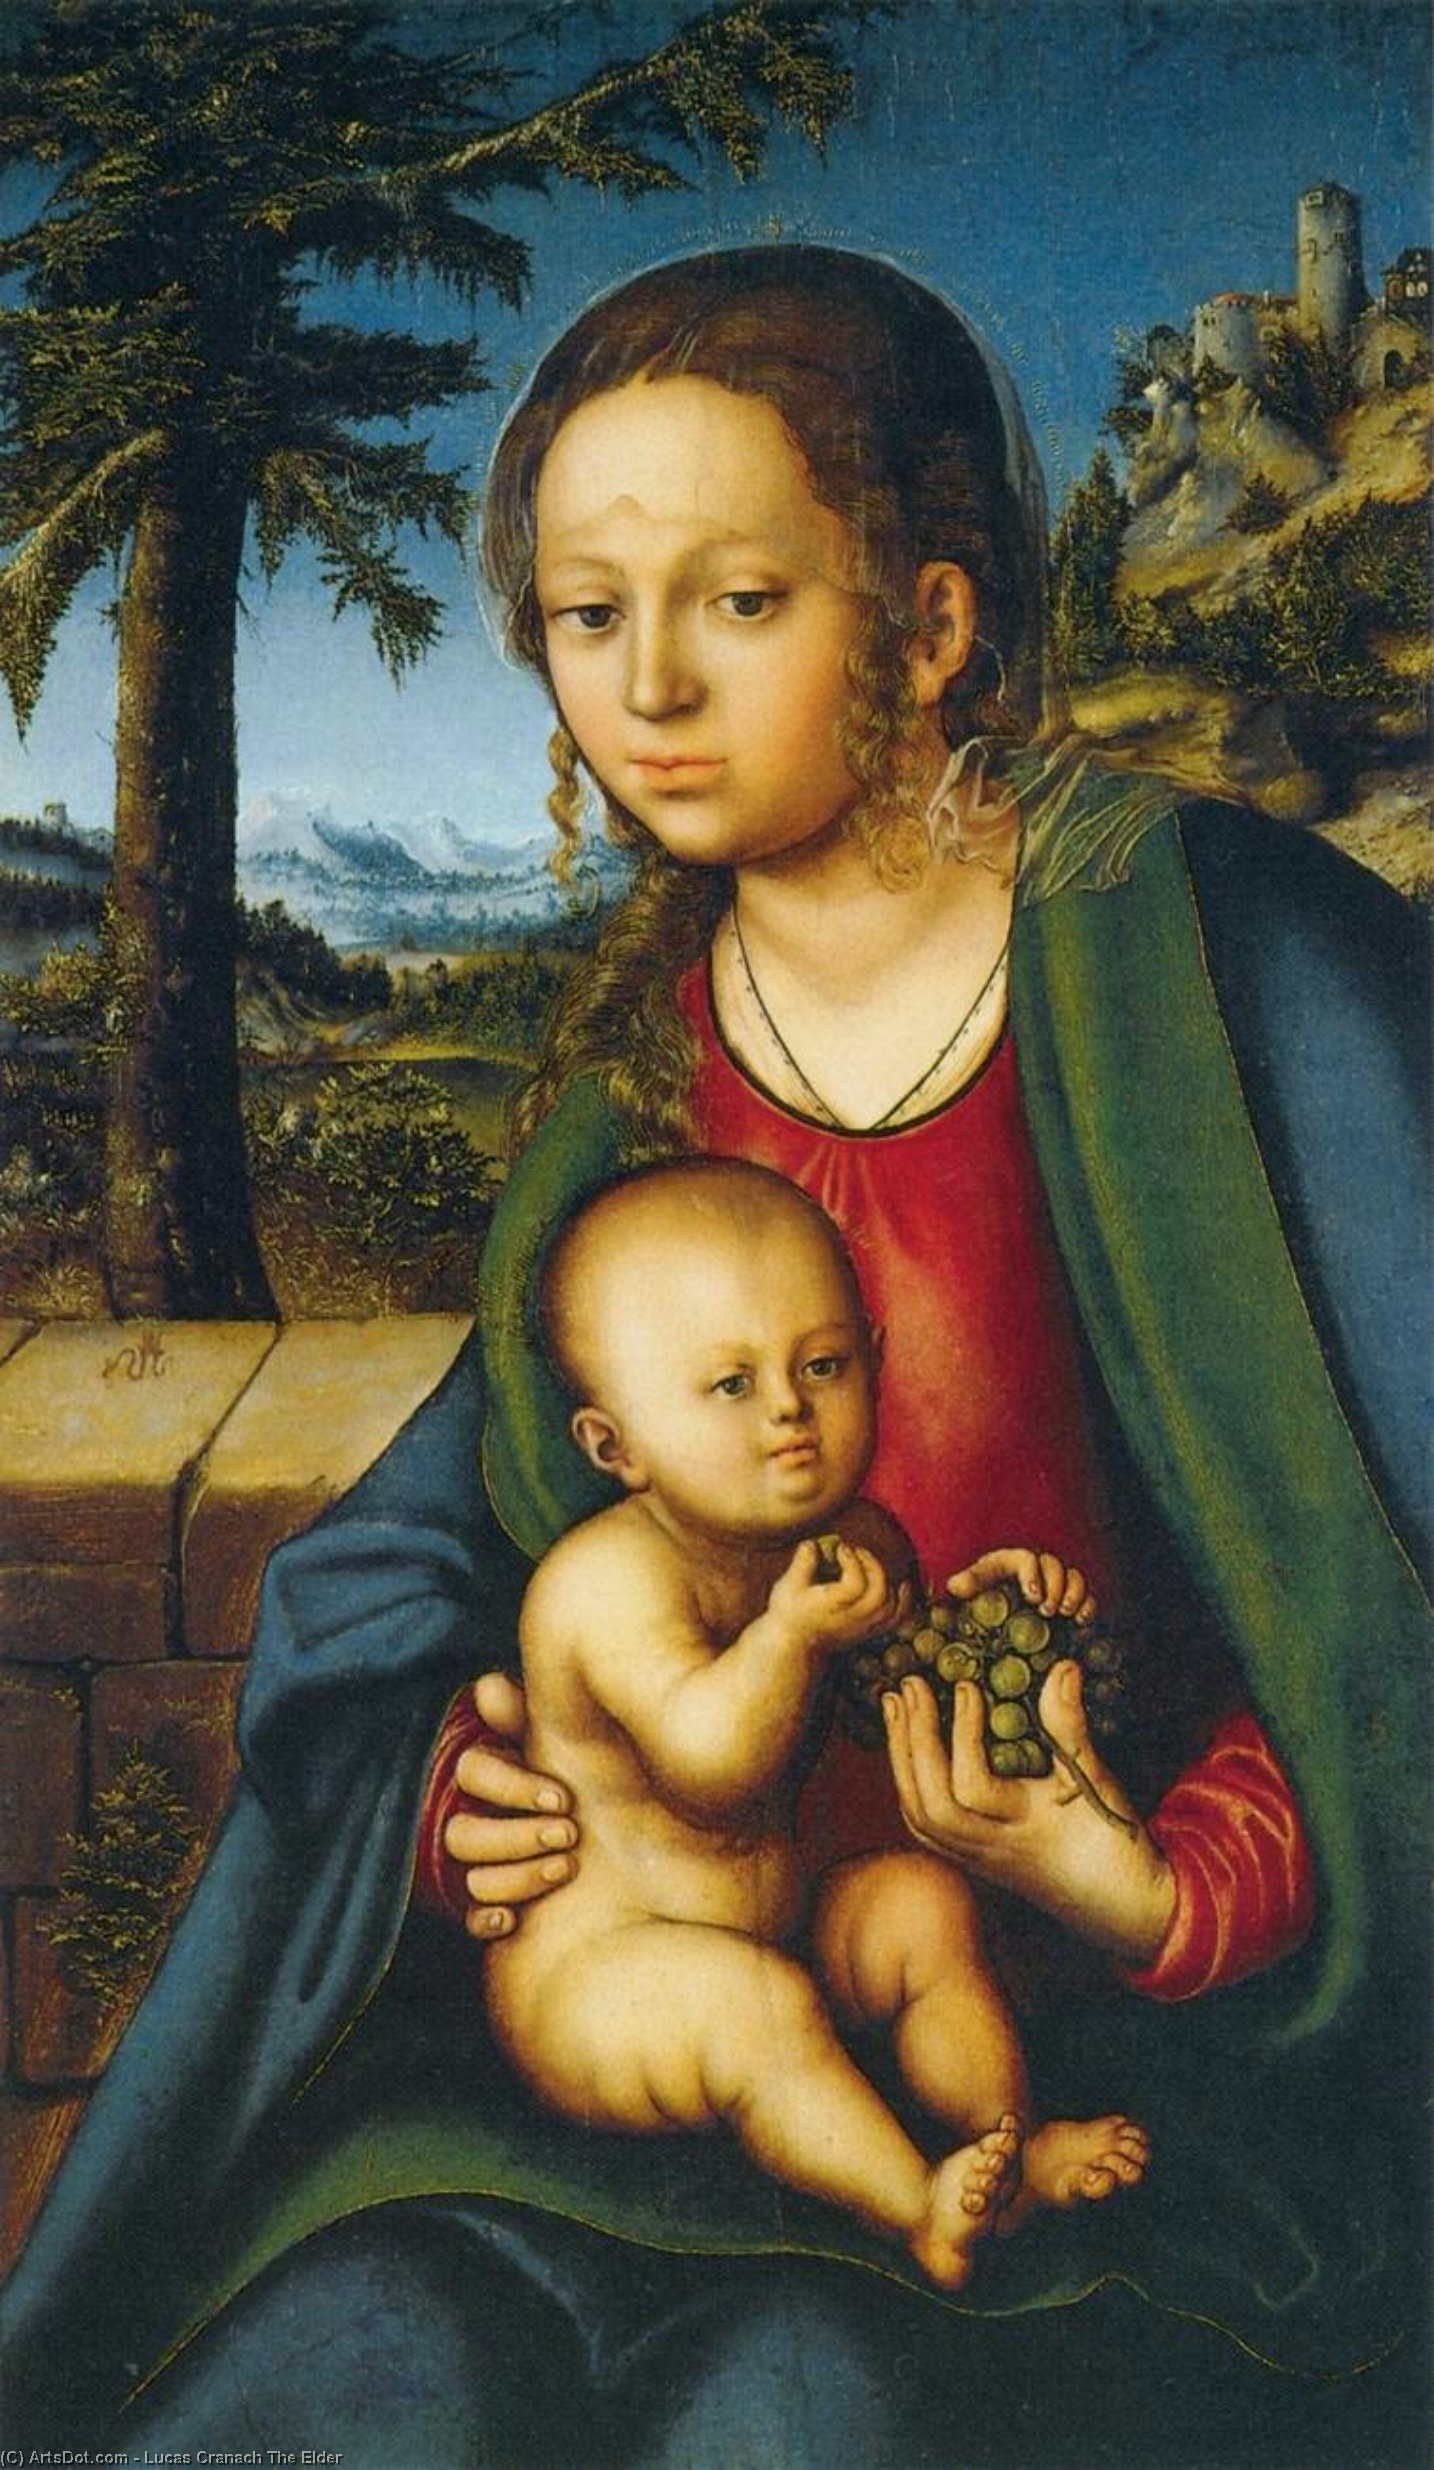 virgen y el niño enestado  Un  Manojo  todaclasede  uvas , Óleo sobre tabla de Lucas Cranach The Elder (1472-1553, Germany)